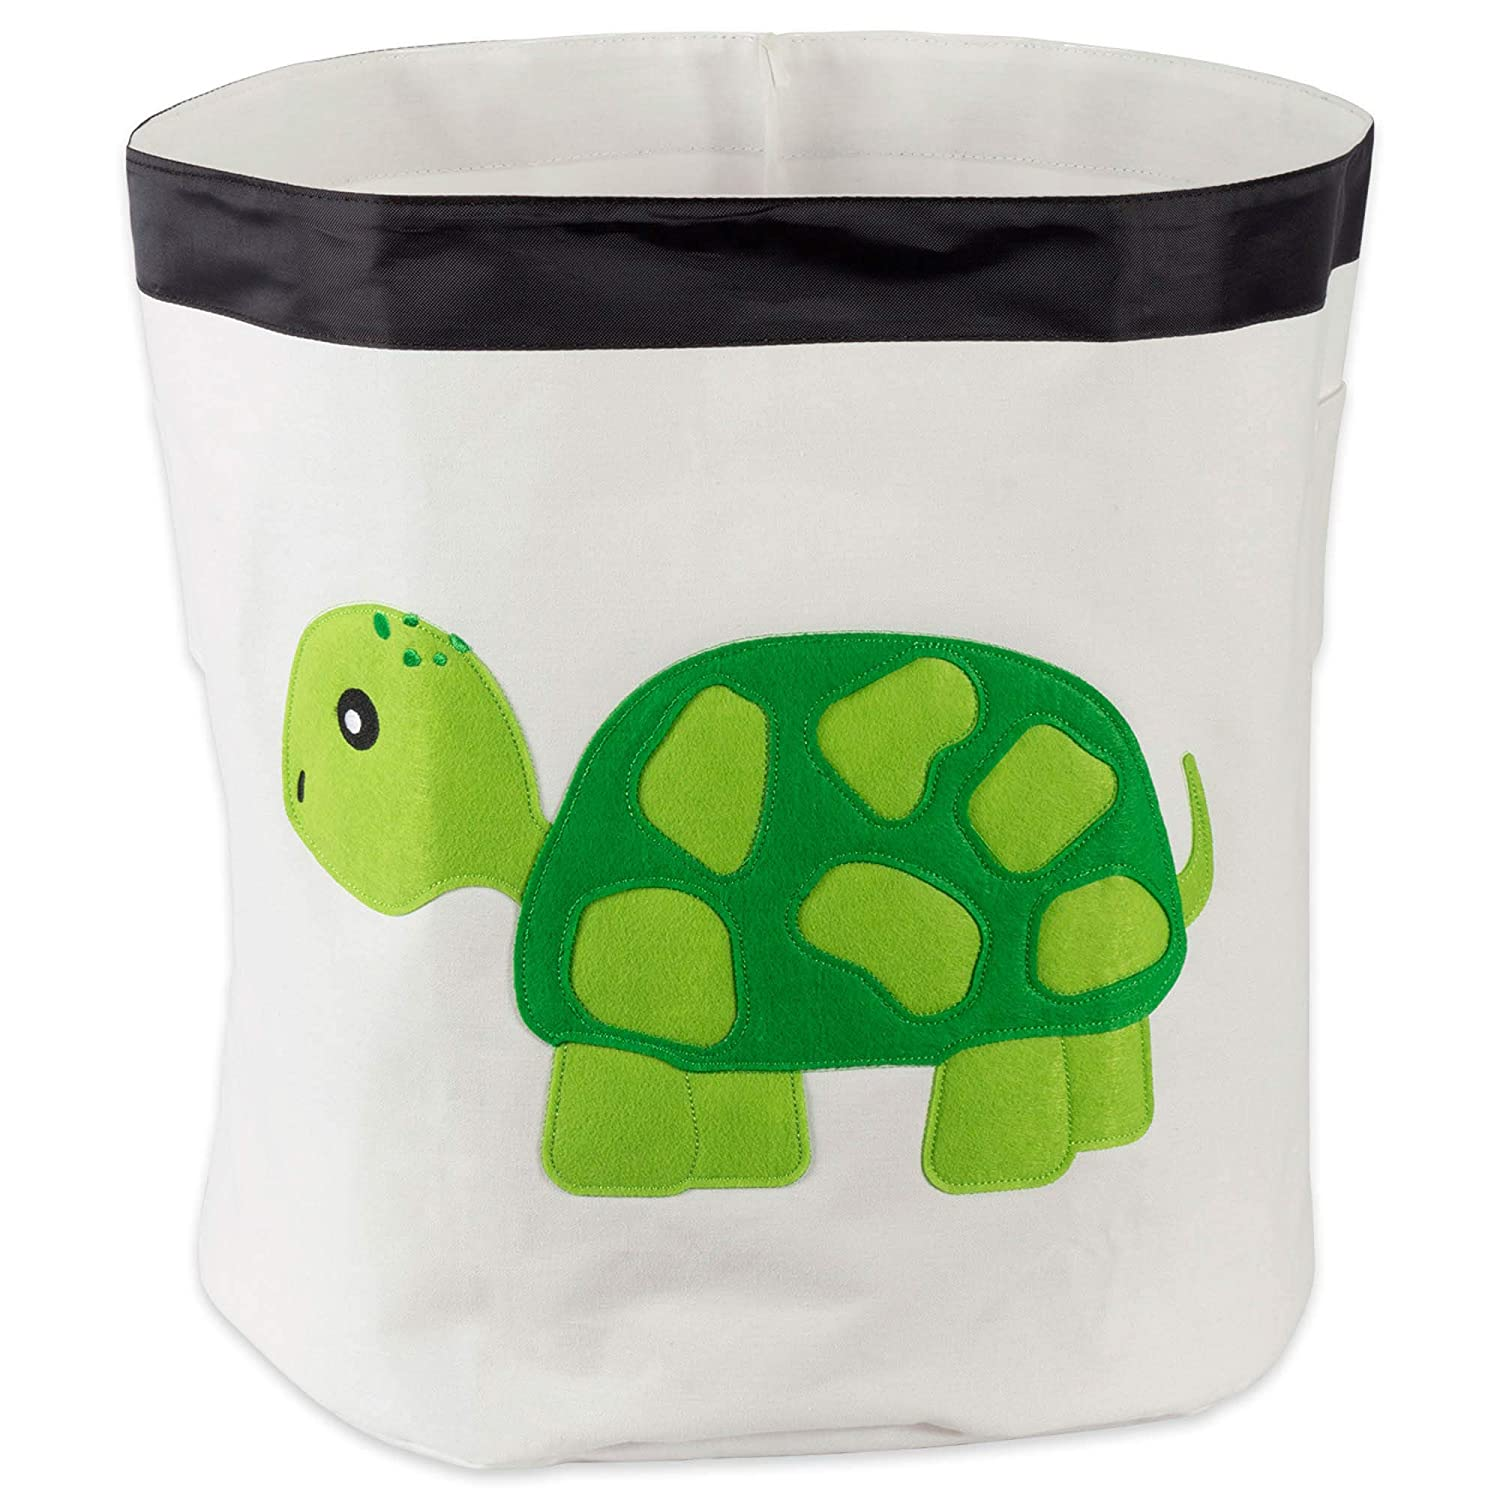 E-Living Store Collapsible Storage Bin Basket for Bedroom, Nursery, Playroom and More 17x18 Diameter - Turtle